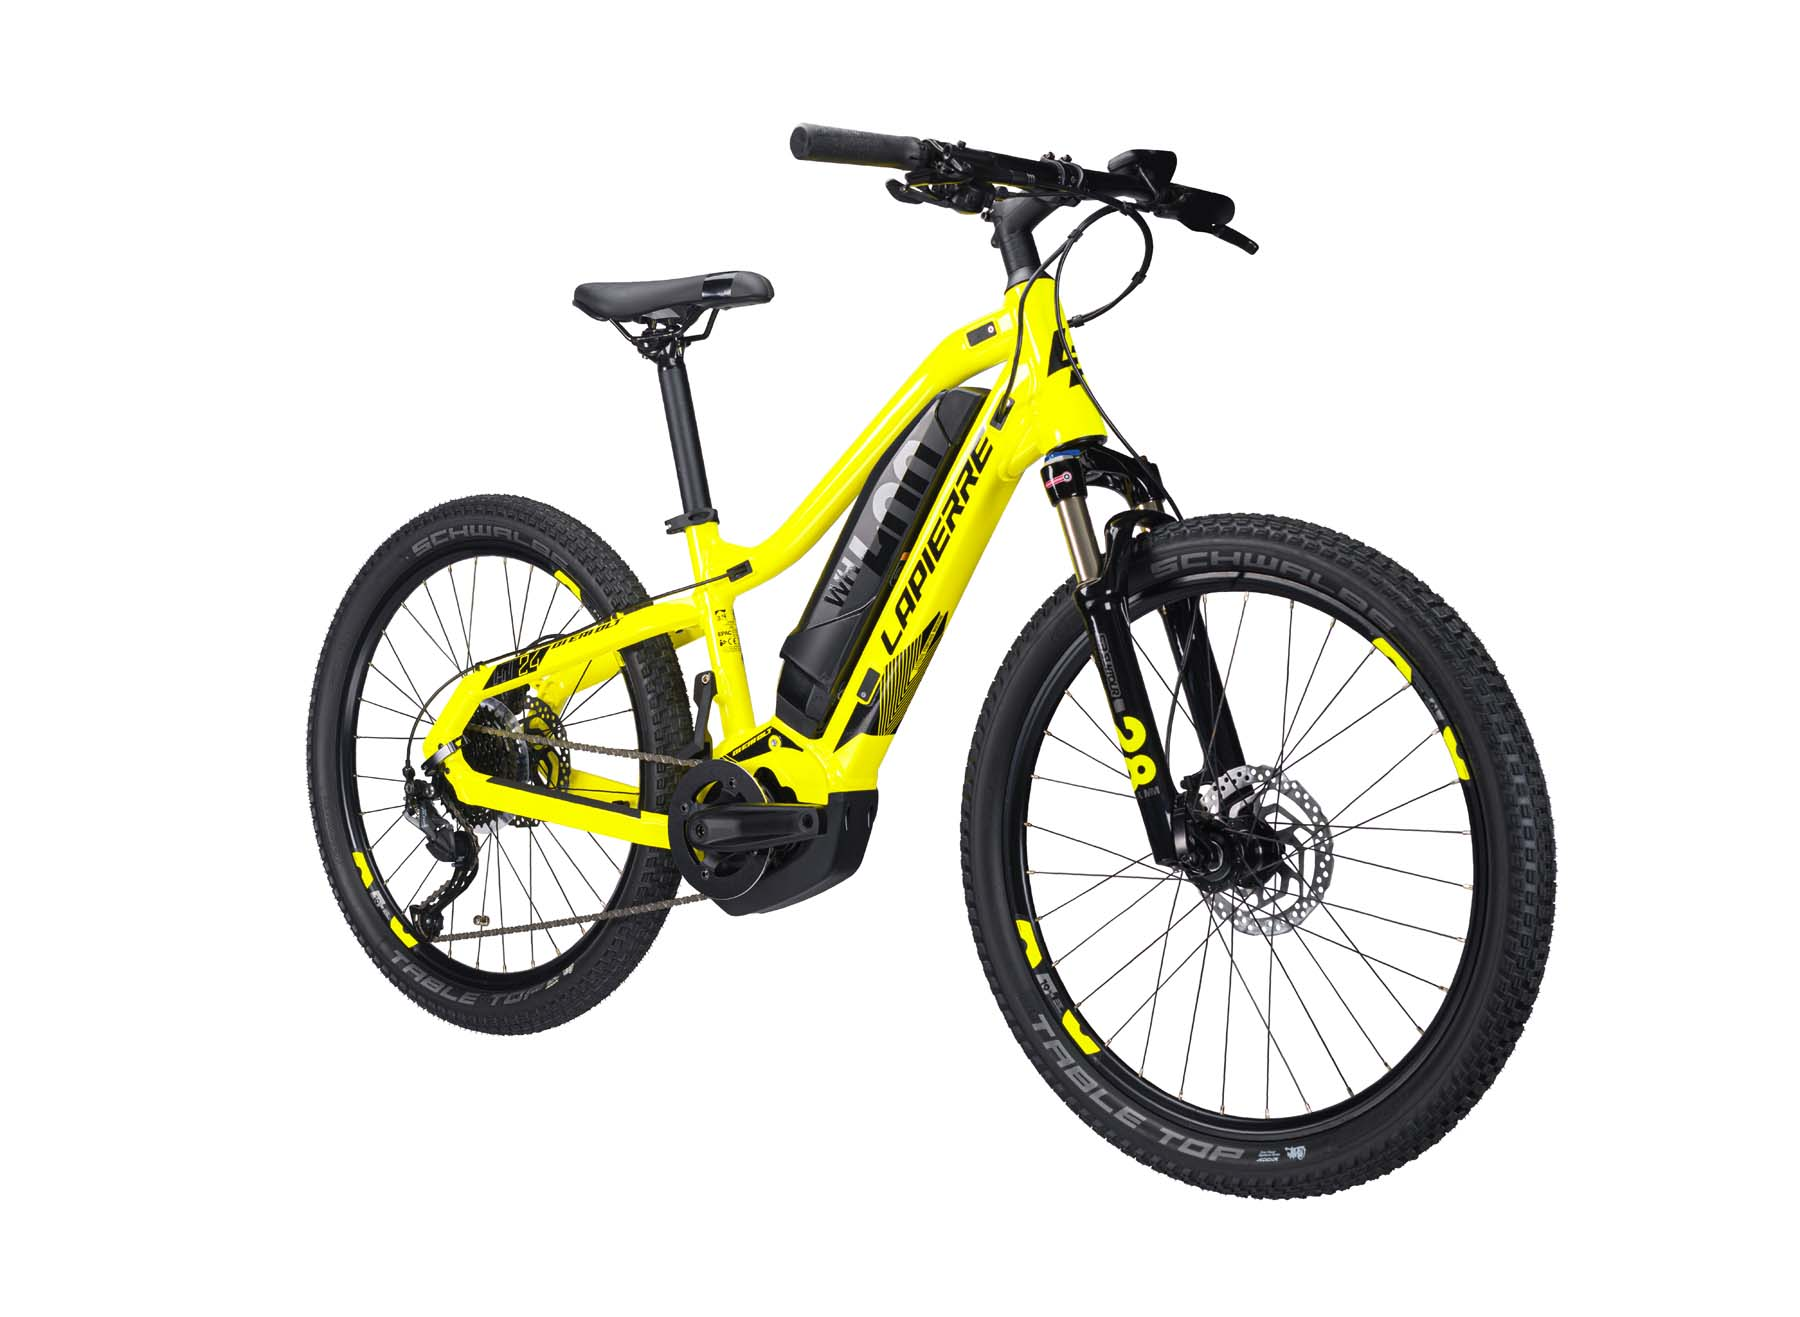 Lapierre Overvolt HT 24 2021 Kids Electric Mountain Bike - View 2